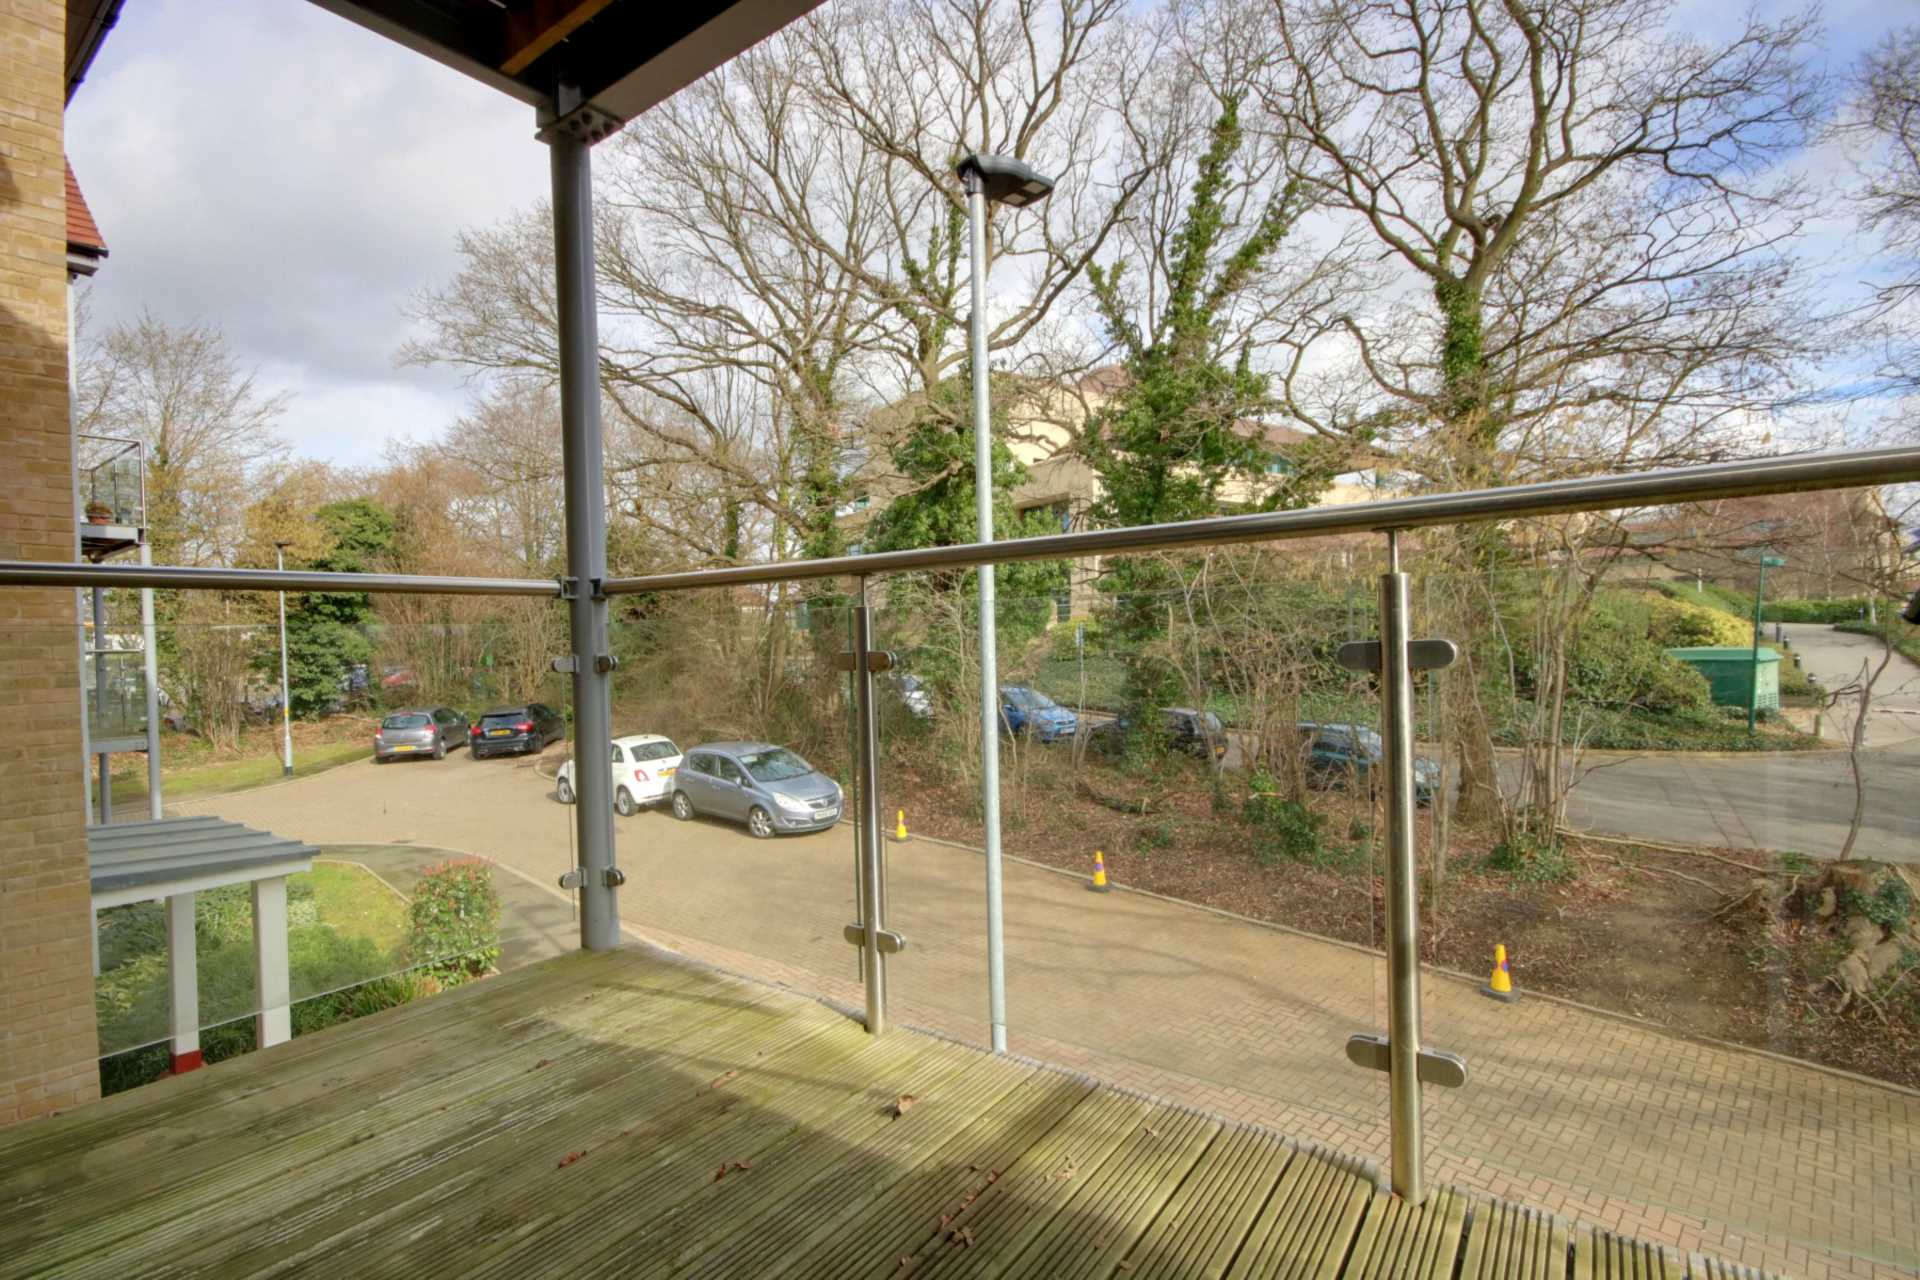 2 DOUBLE BED APARTMENT WITH 2 PARKING SPACES ON MODERN DEVELOPMENT., Image 9